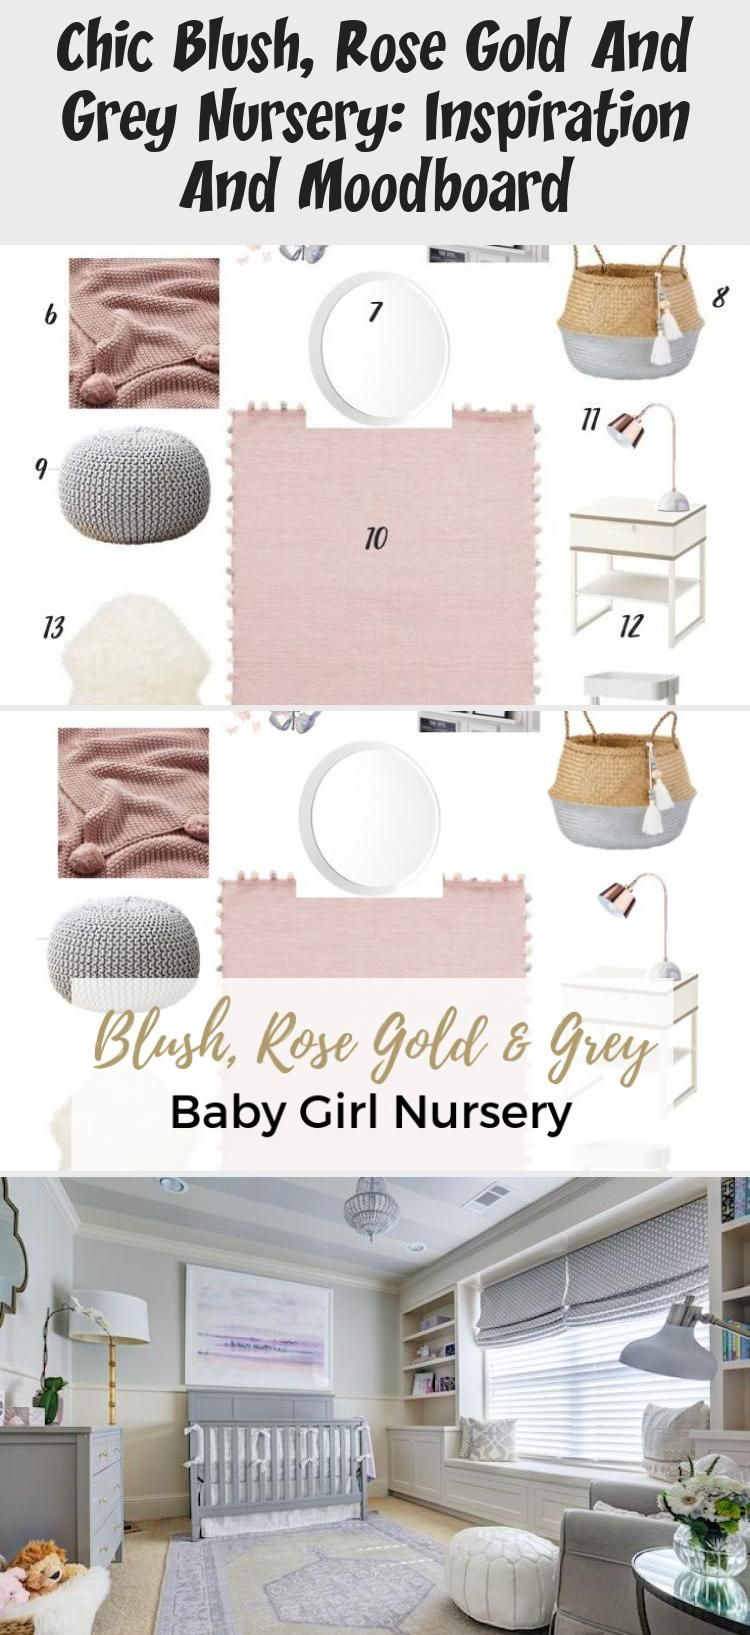 Best Chic Blush Rose Gold And Grey Nursery Inspiration And 400 x 300